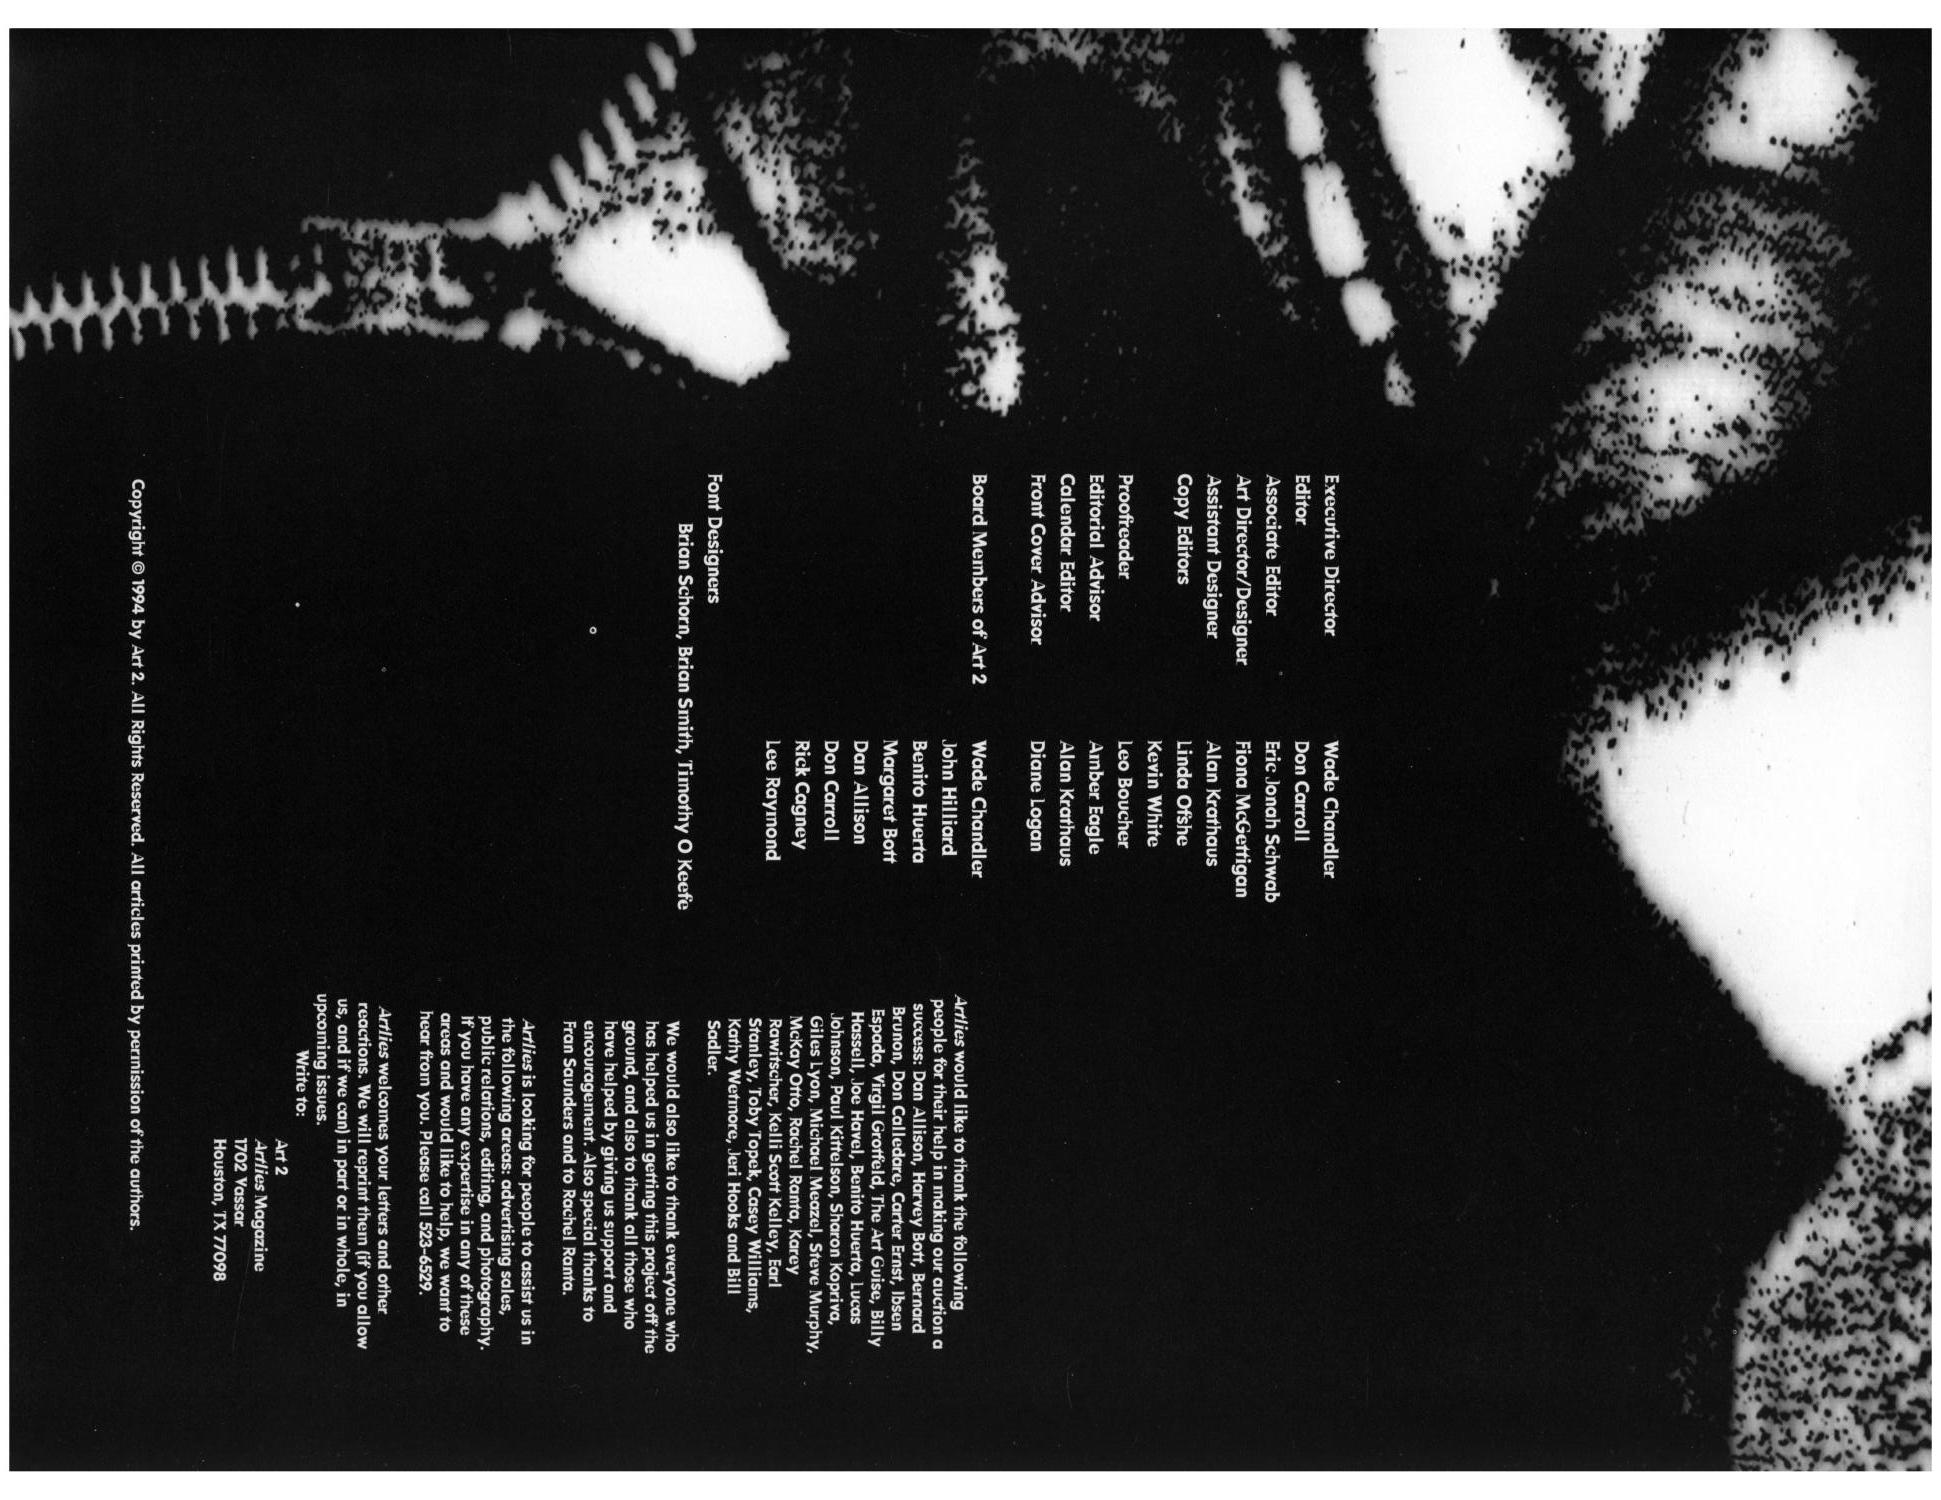 Art Lies, Volume 1, March 1994                                                                                                      Front Inside